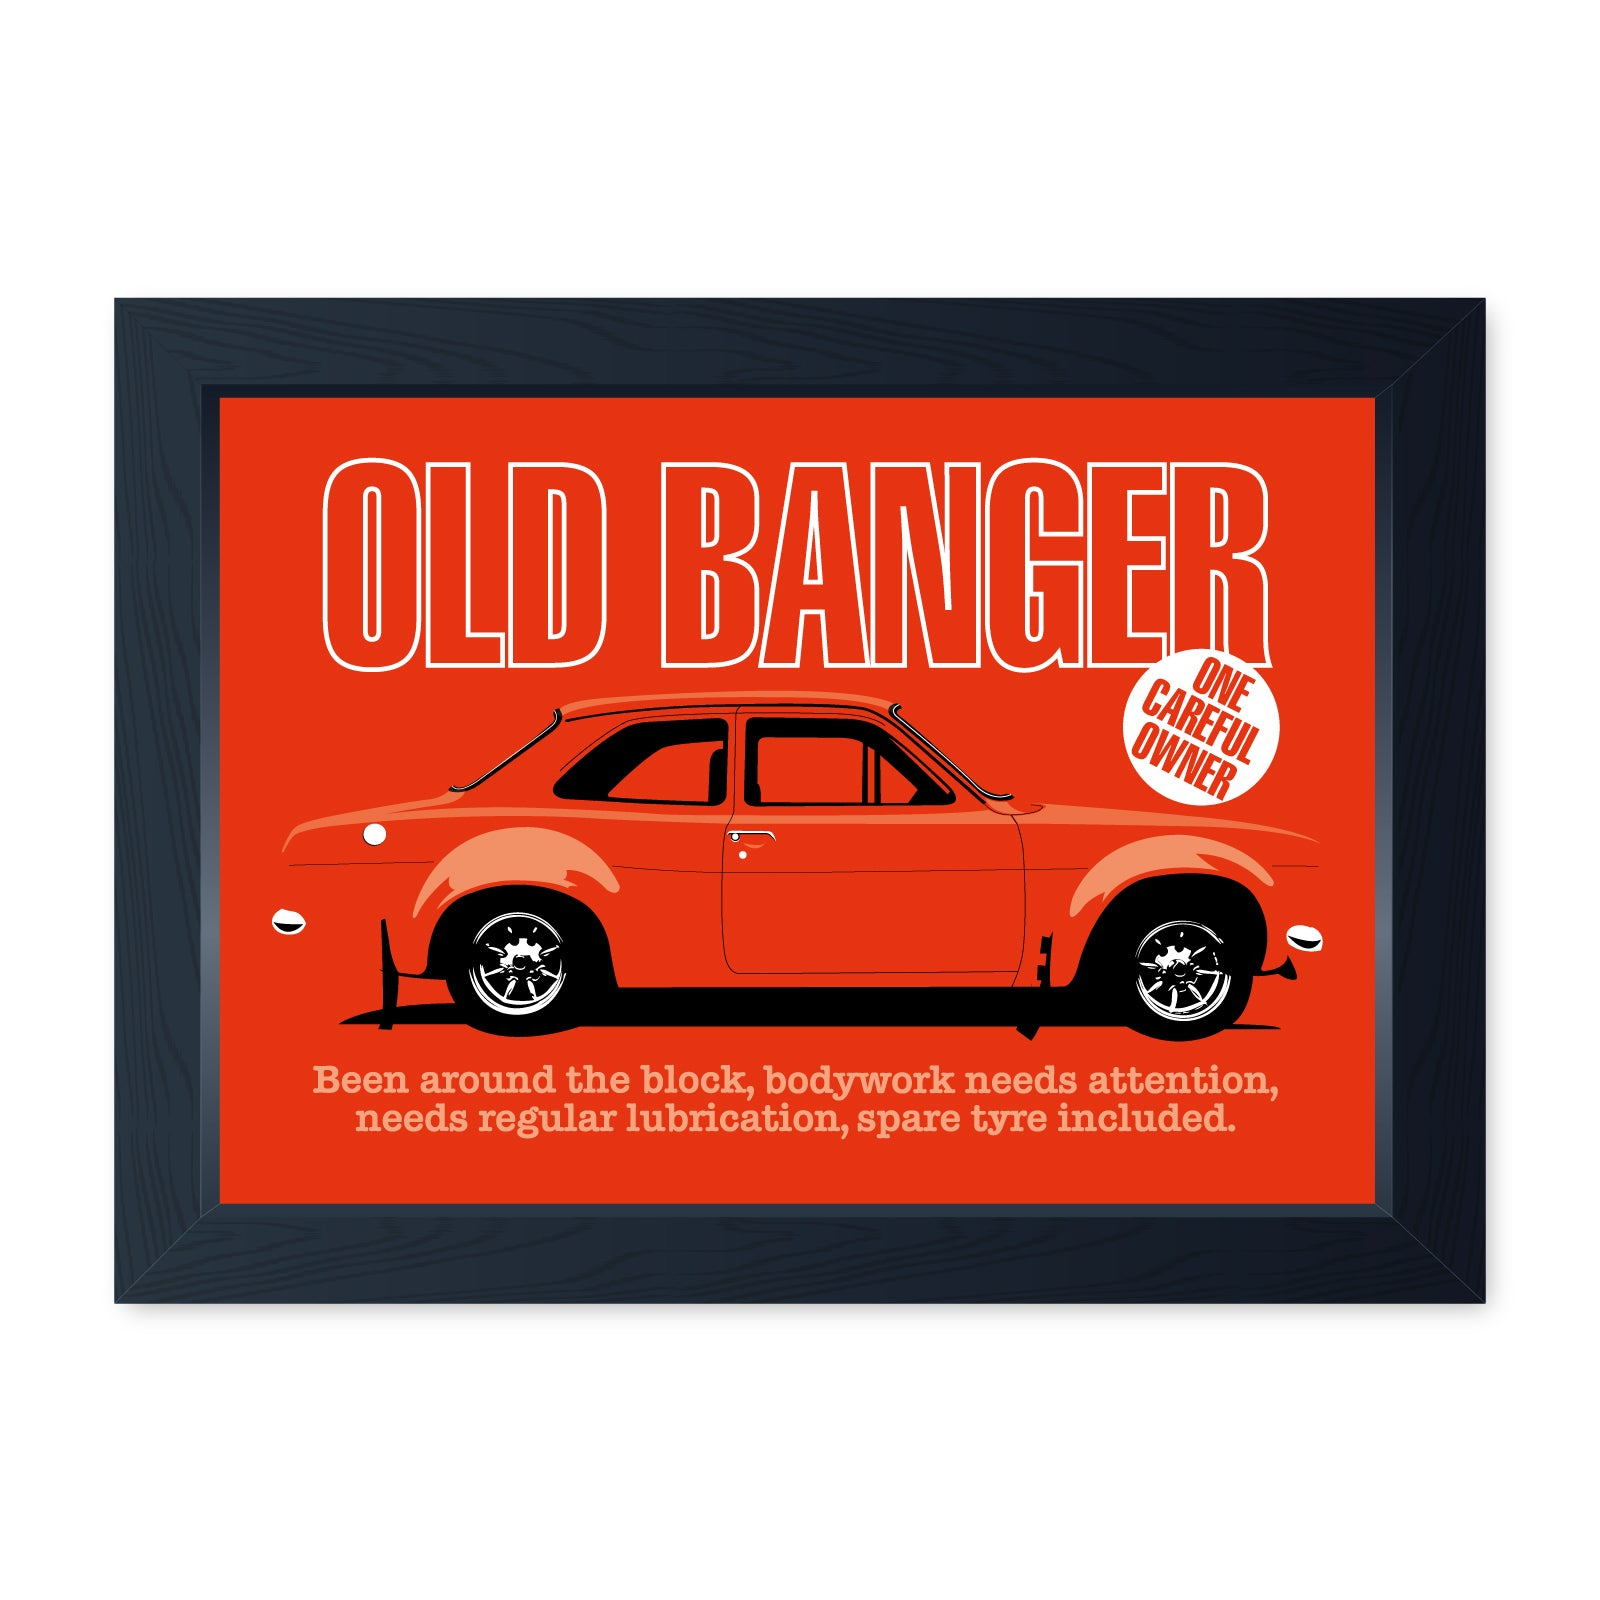 Old Banger Mk1 Escort, Funny Framed Print - Home Decor Garage Shed Man Cave Wall Art